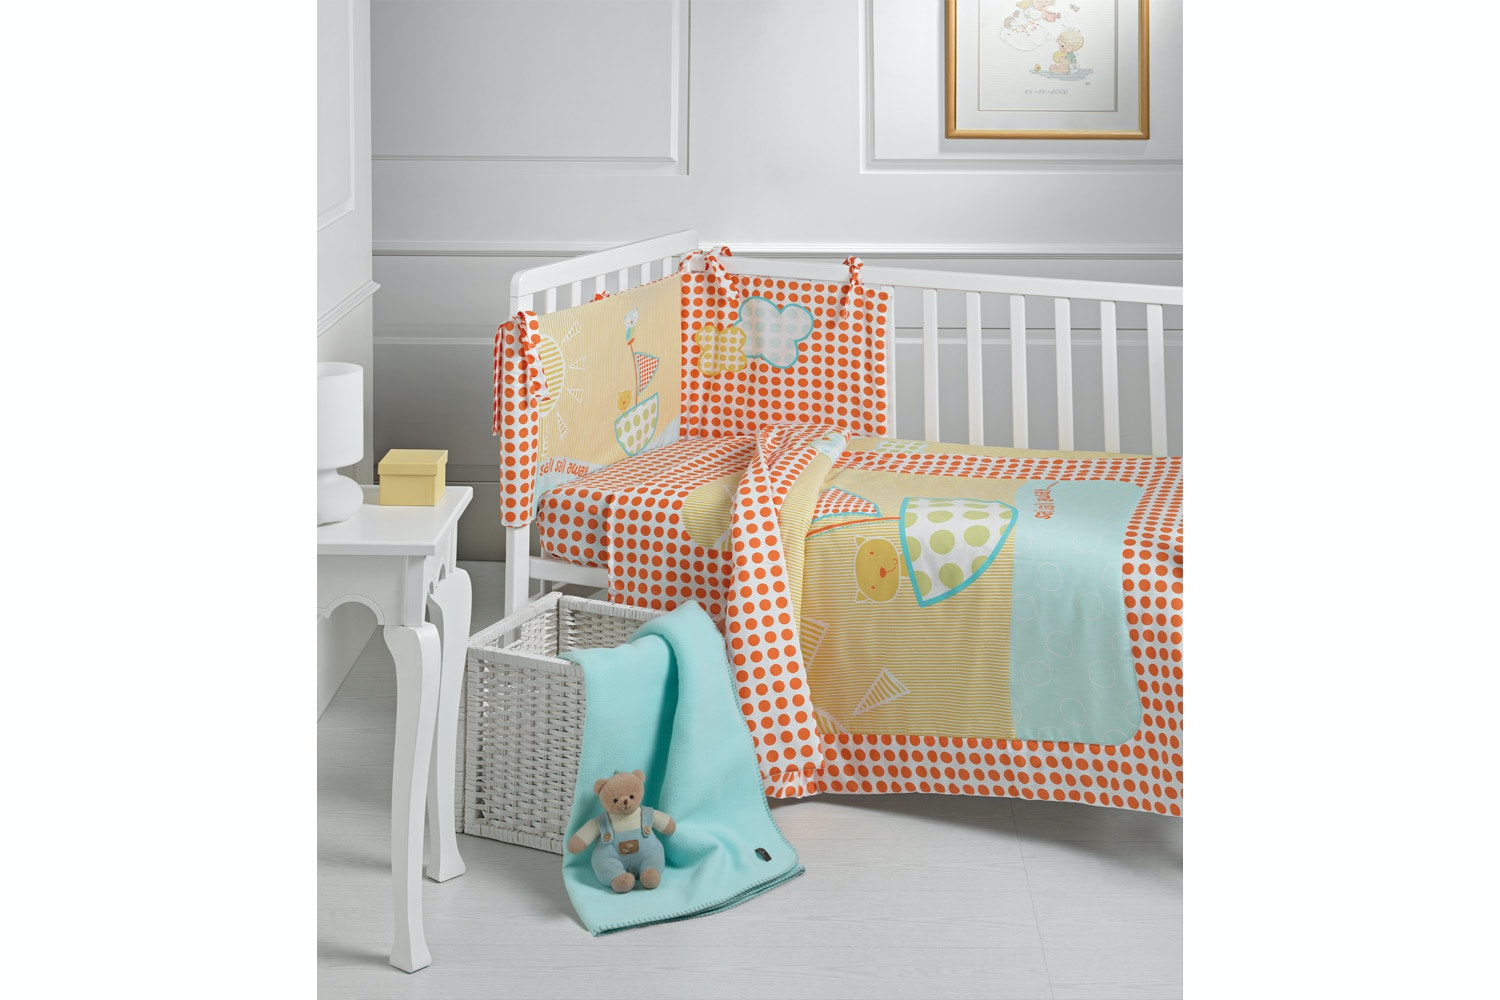 Babysleep 5 PC Bed Set | Owl & Pussycat